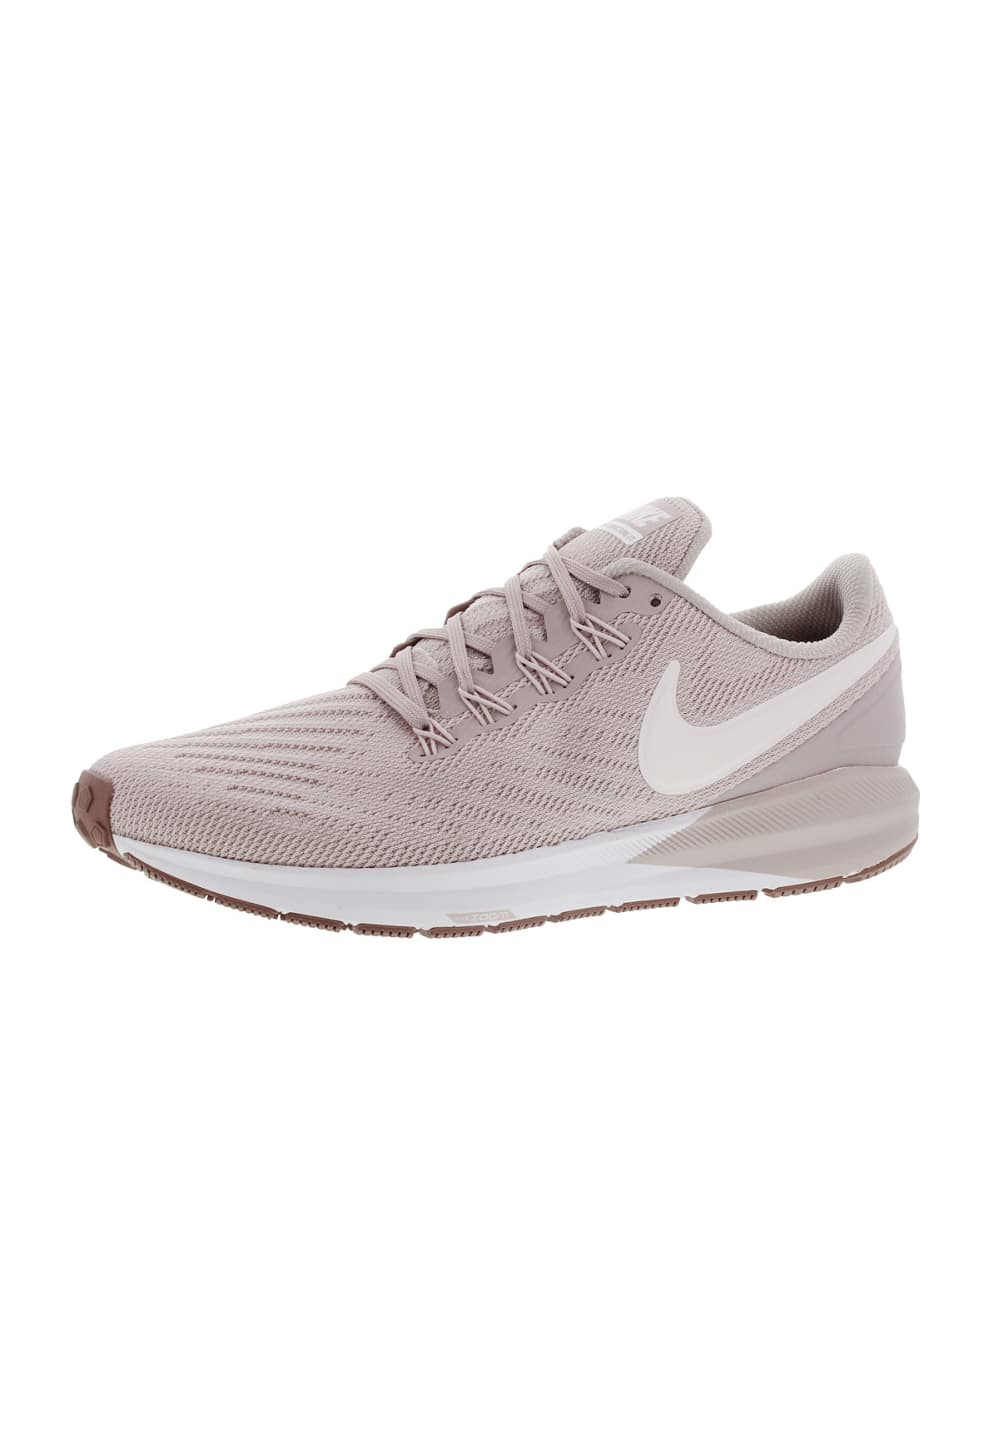 outlet store ad2b0 b2f23 Nike Air Zoom Structure 22 - Zapatillas de running para Mujer - Rosa